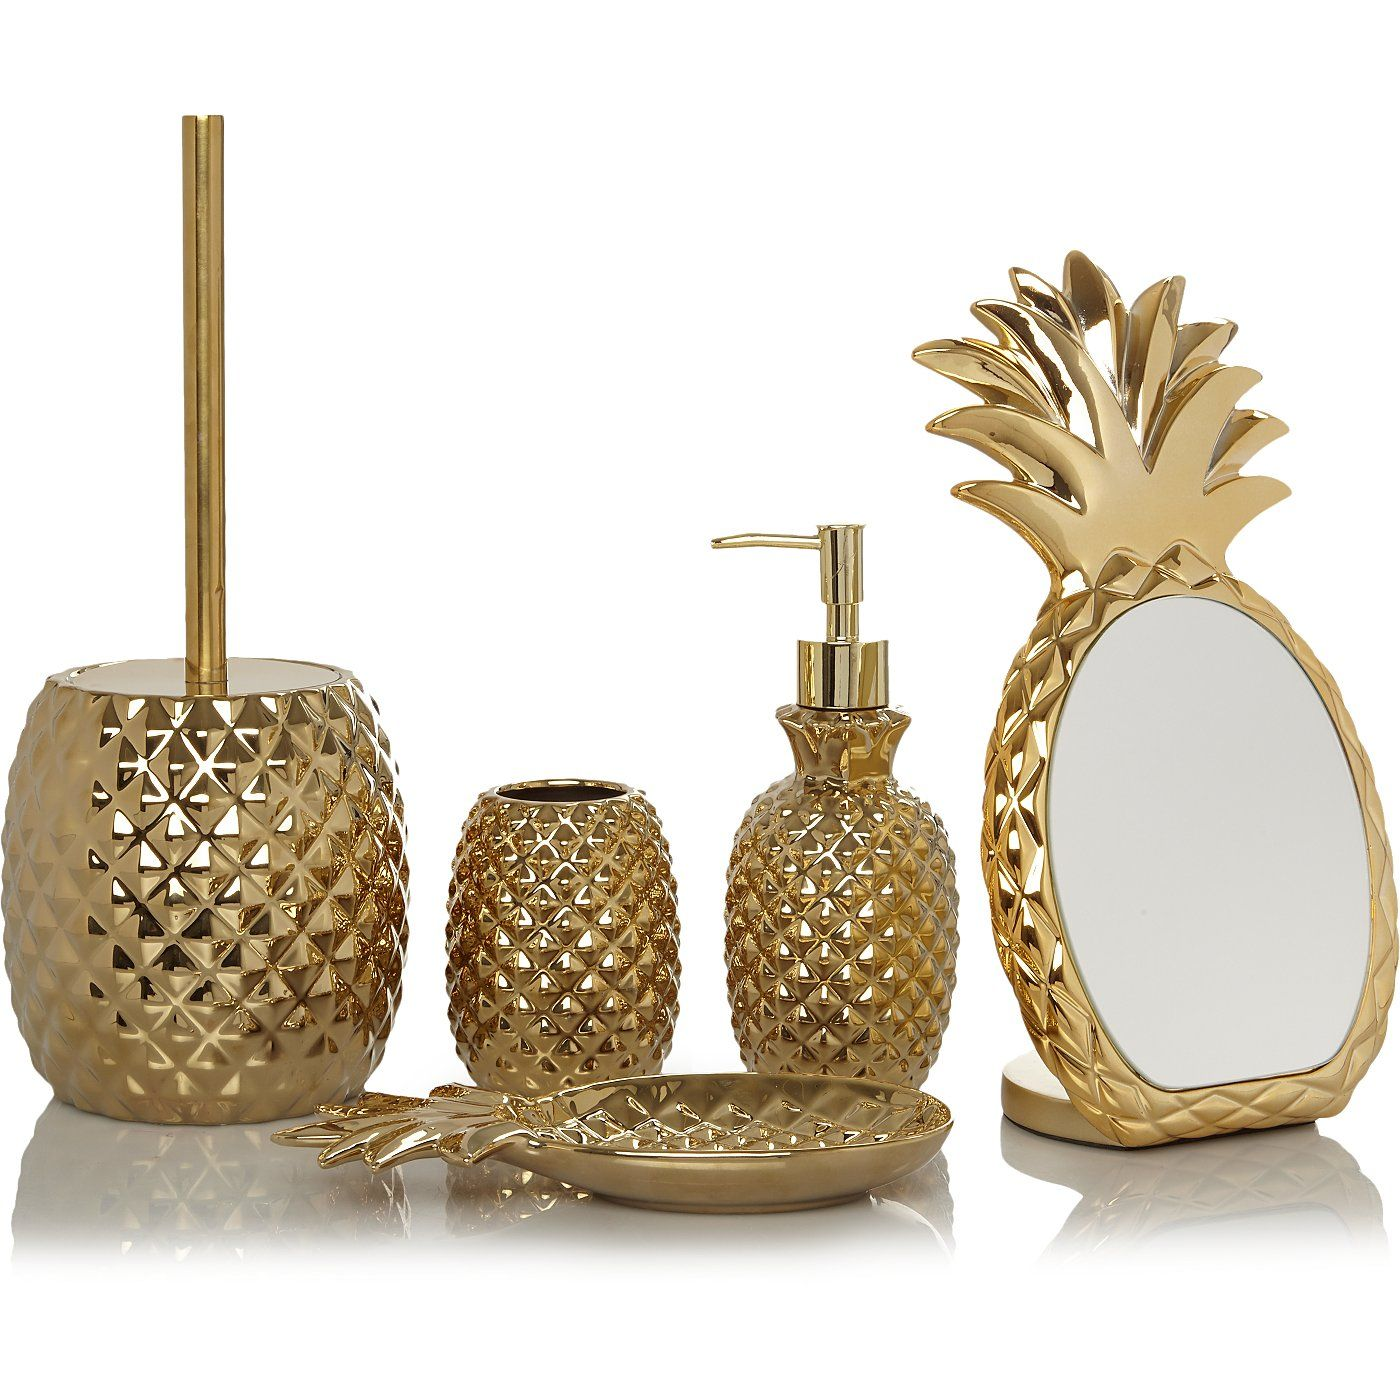 Gold Pineapple Bath Range  George  Gold pineapple, Bathroom